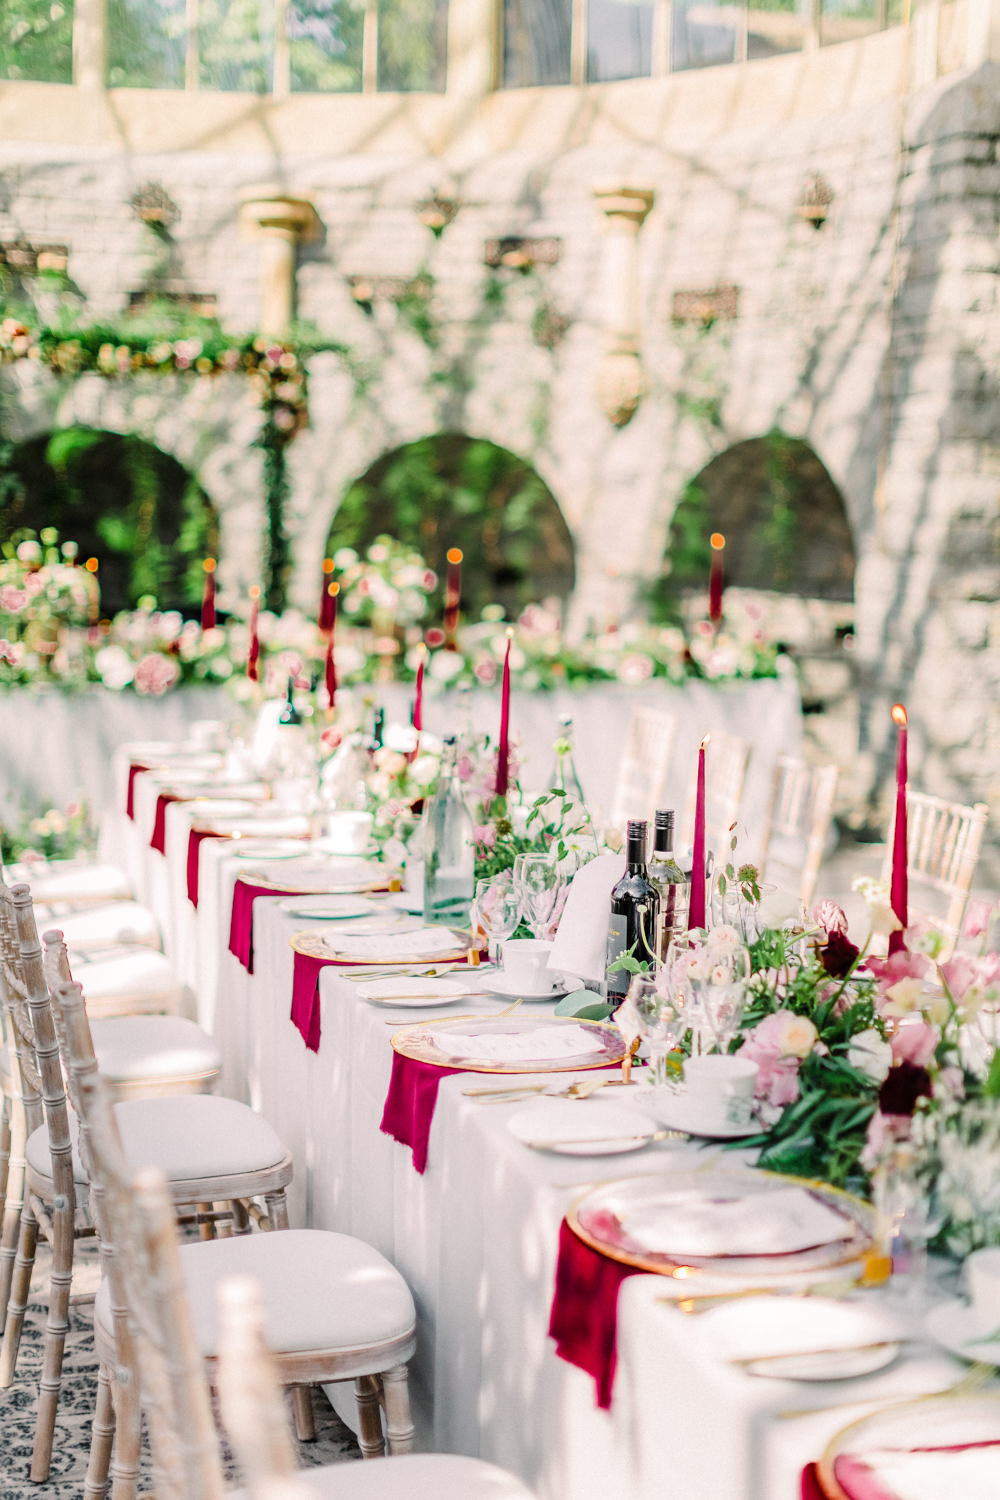 Long Tables Red Candles Napkins Flowers Greenery Tortworth Court Wedding Sanshine Photography